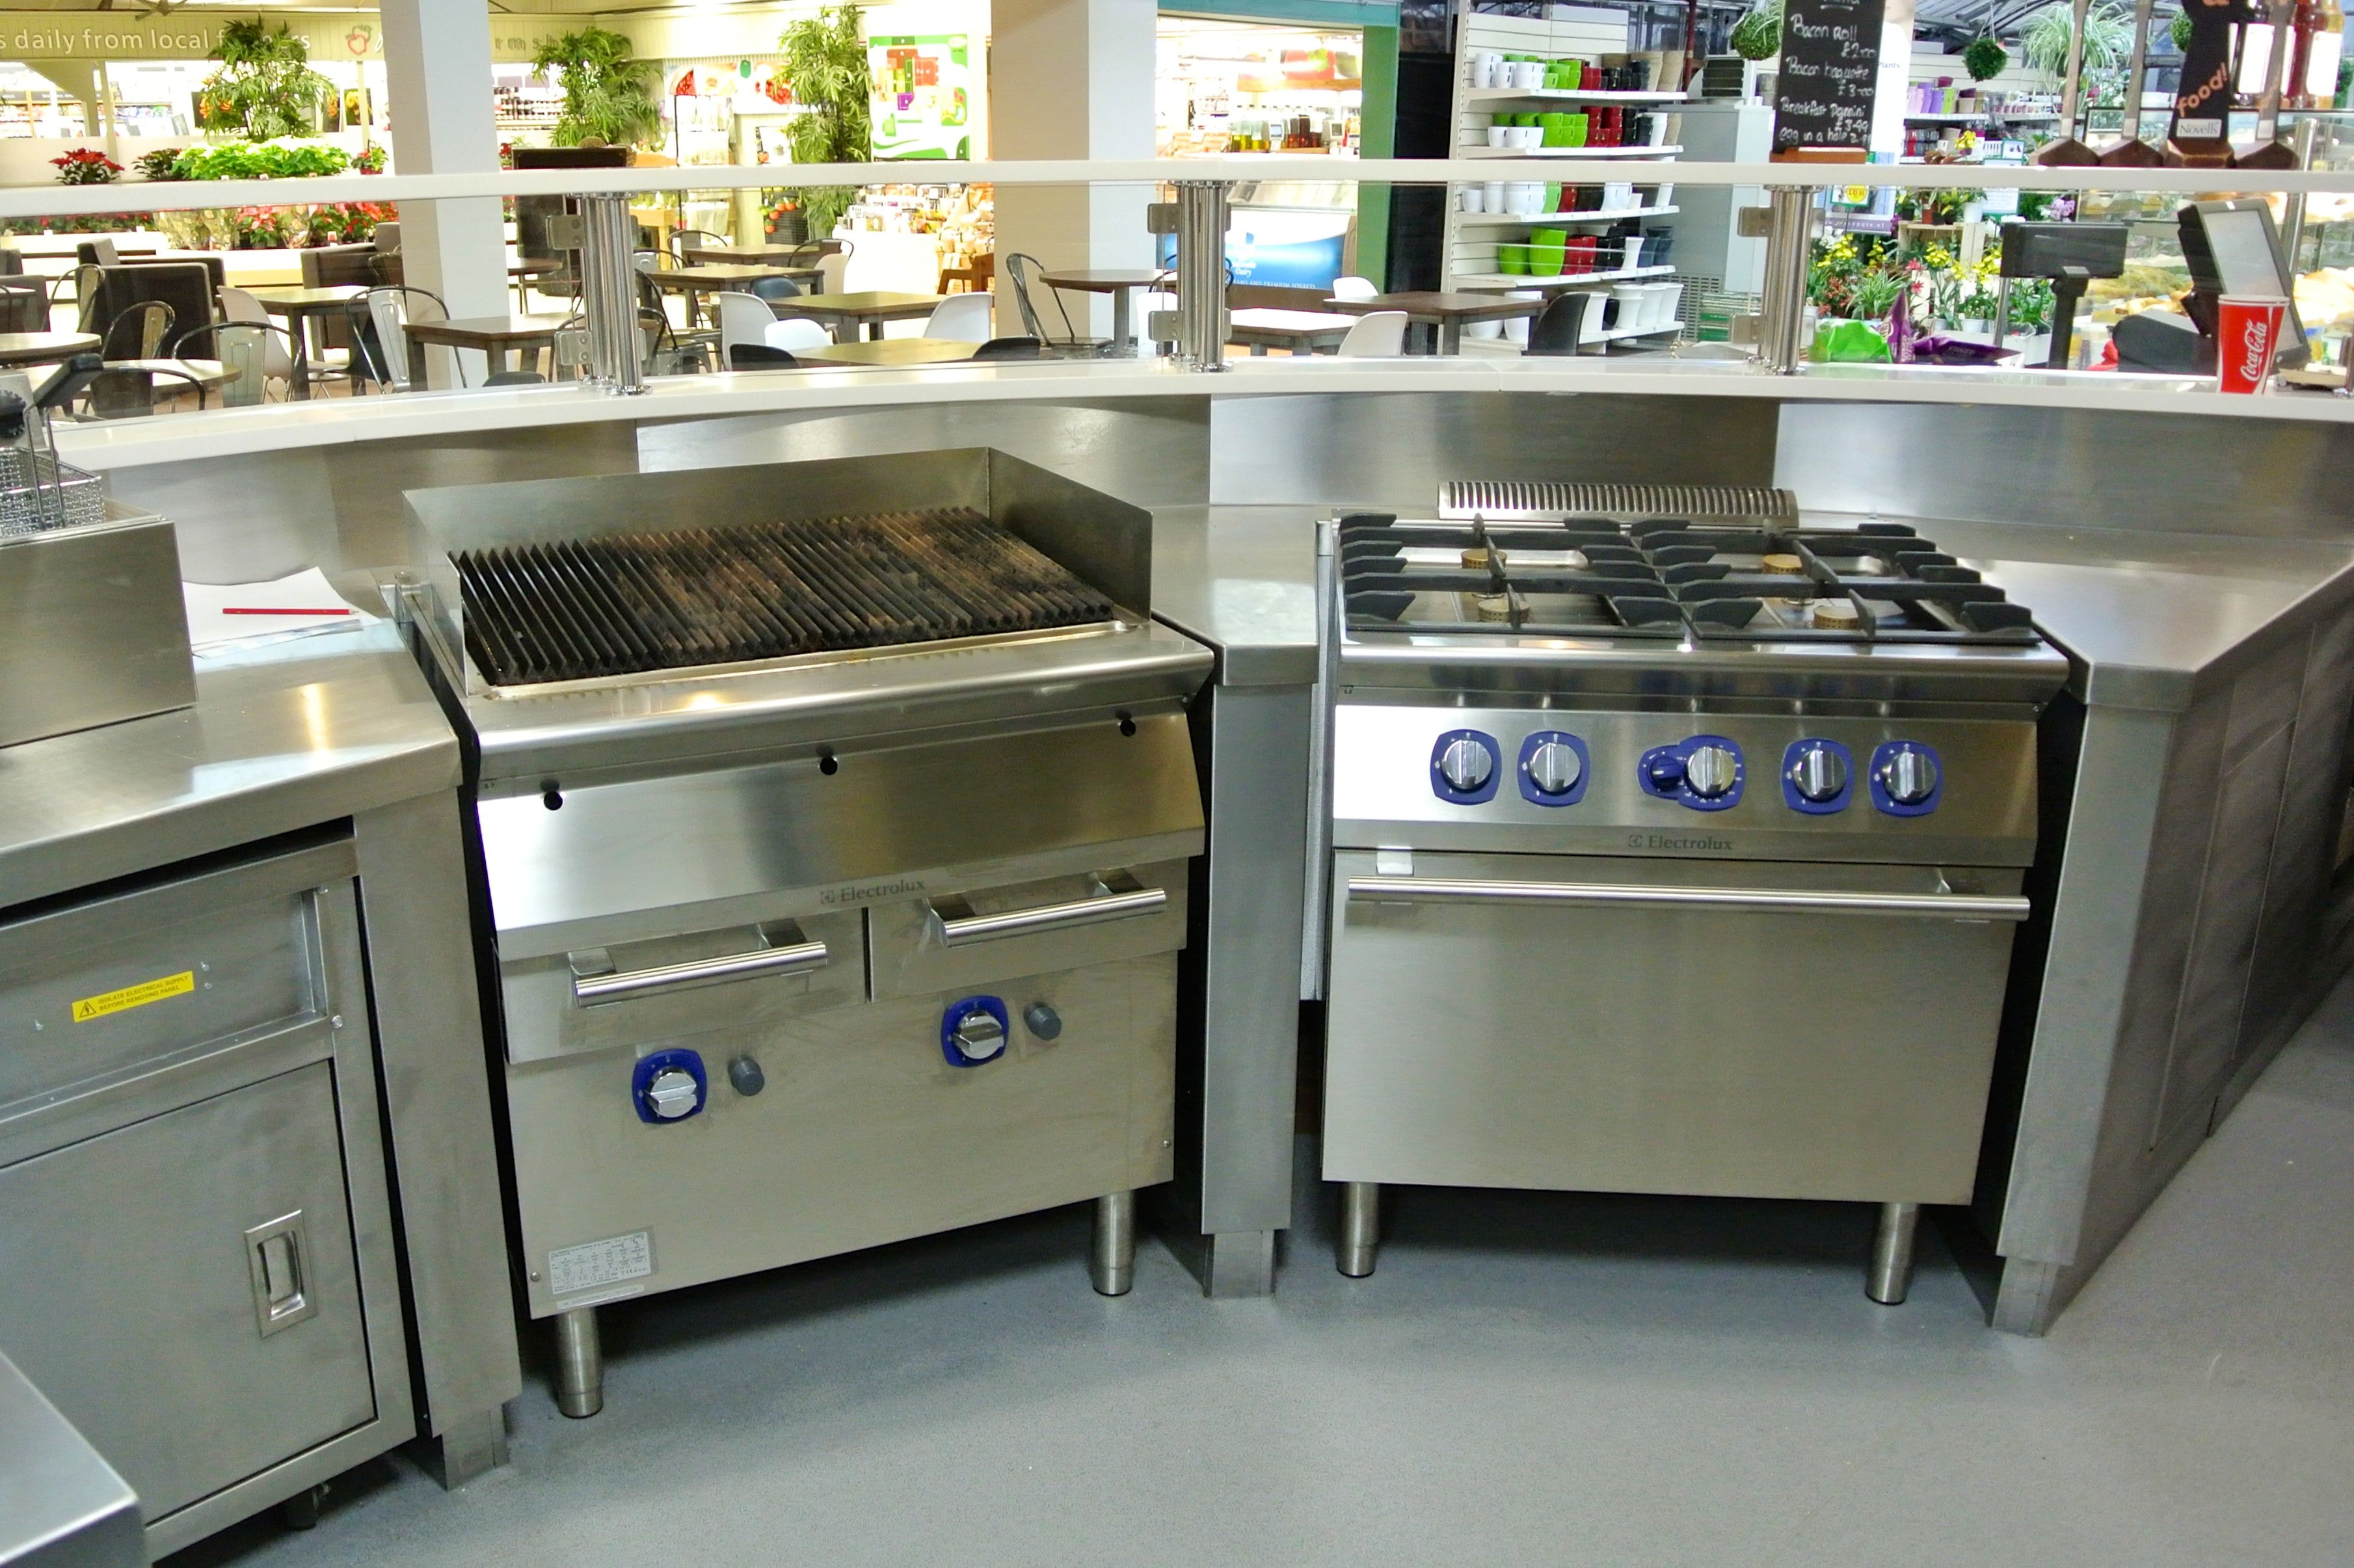 ifse designed and installed catering kitchen facilities at polhill